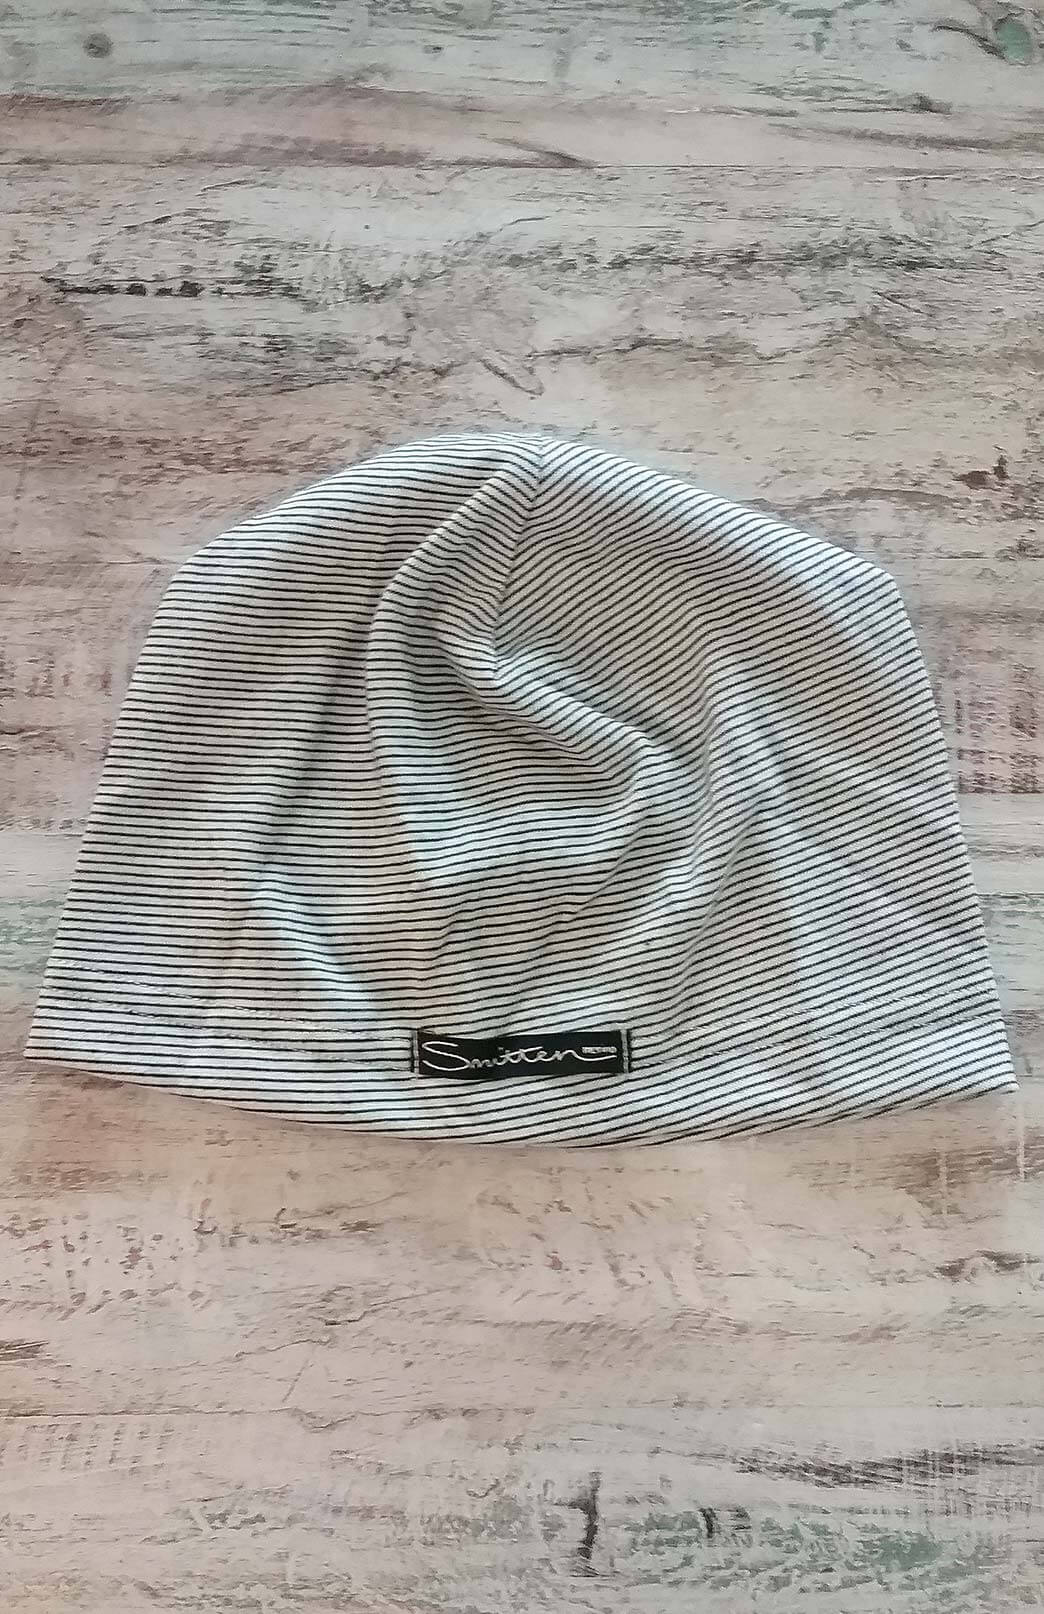 Lightweight Beanie - Lightweight Superfine Activewear and Fashion Beanie - Organic Cotton - Smitten Merino Tasmania Australia